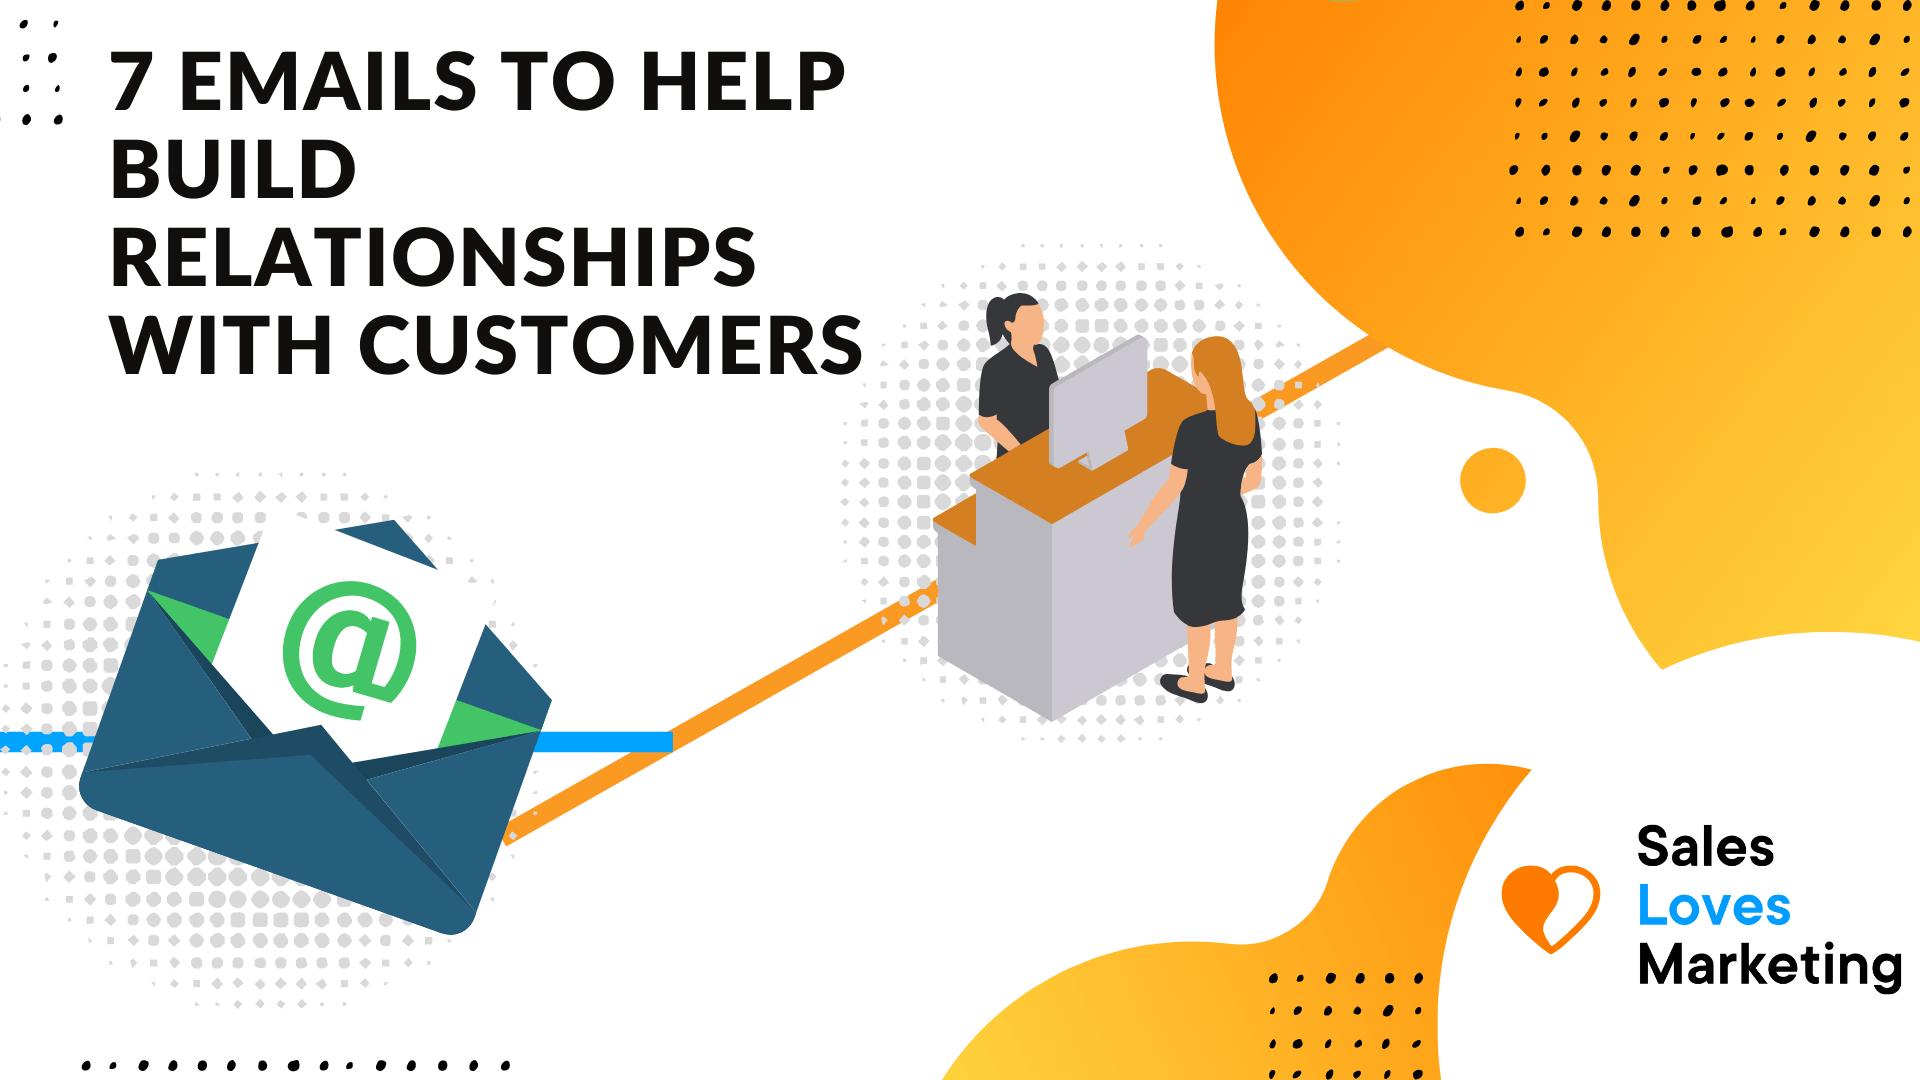 How to built a relationship with customers via email